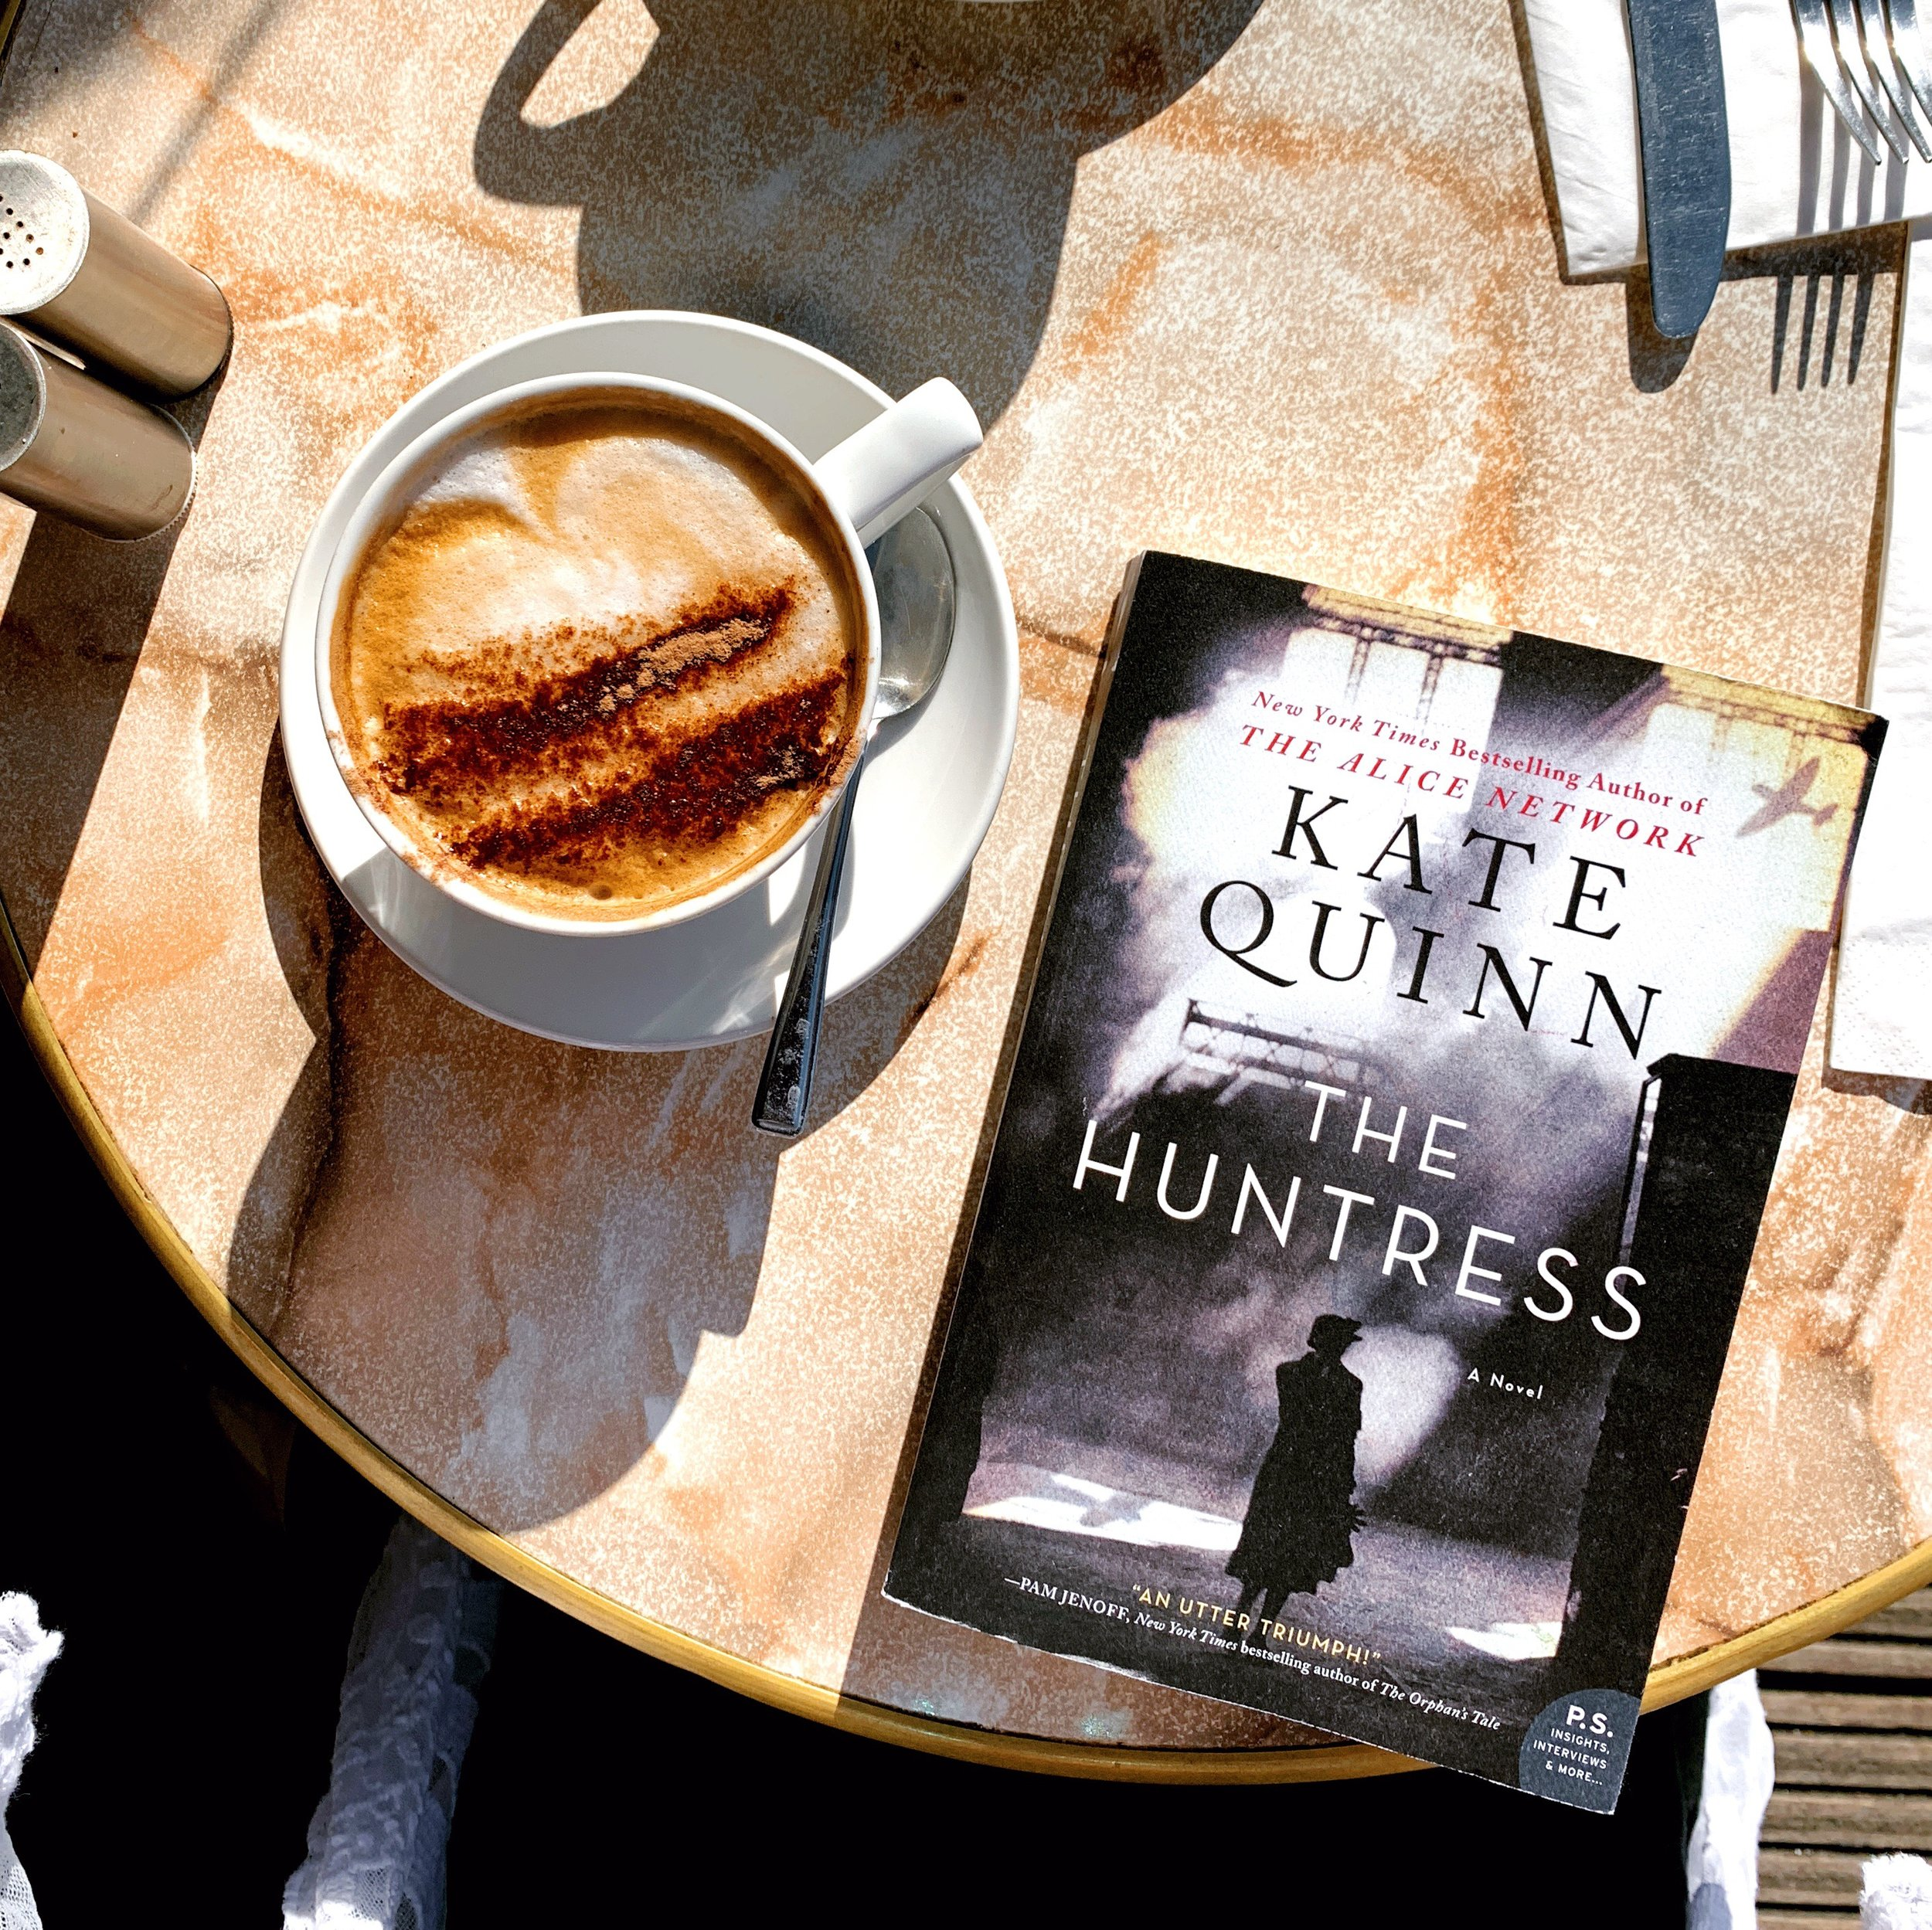 Currently reading The Huntress by Kate Quinn. Alice Network is one of my favorite books, so this was next on the list #mkbookclub #currentlyreading